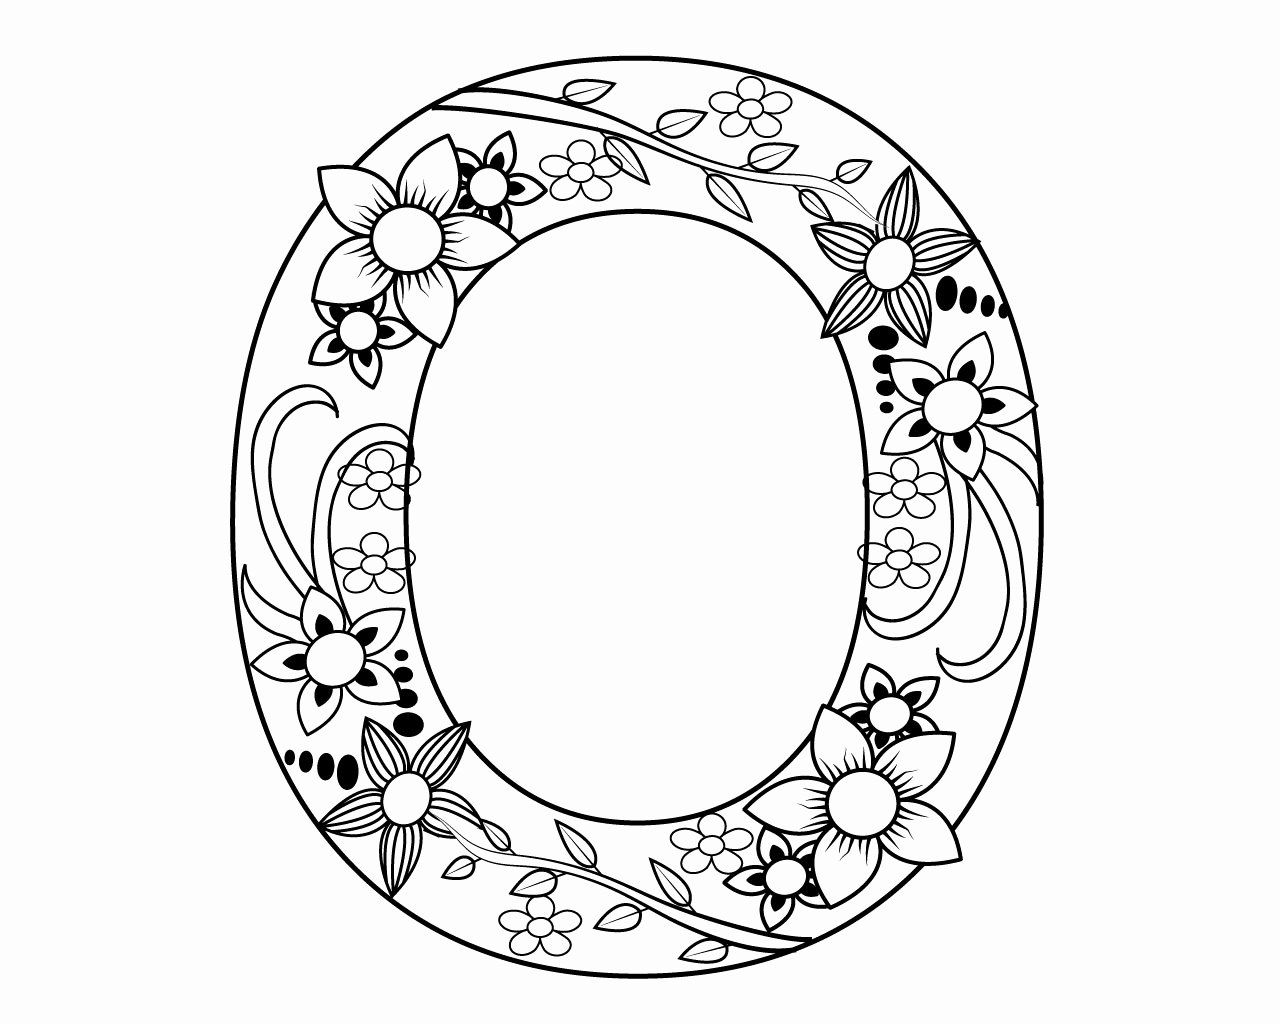 o coloring pages letter o alphabet coloring pages 3 free printable o pages coloring